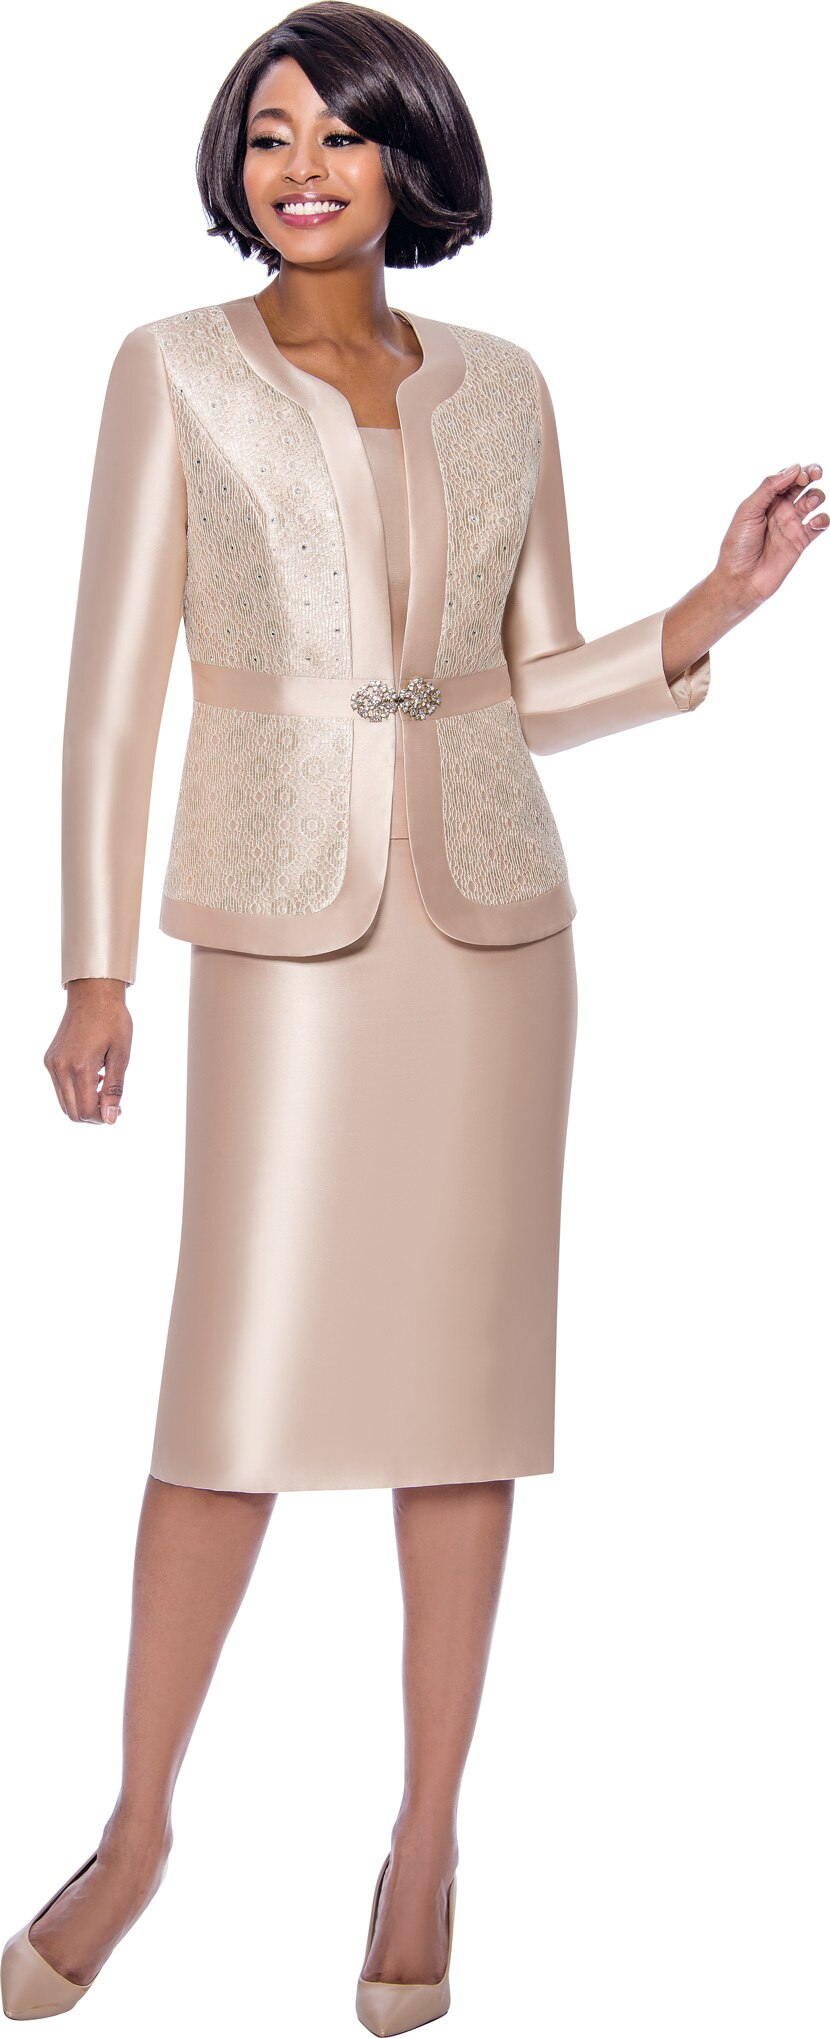 Terramina Suit 7726-Champagne - Church Suits For Less